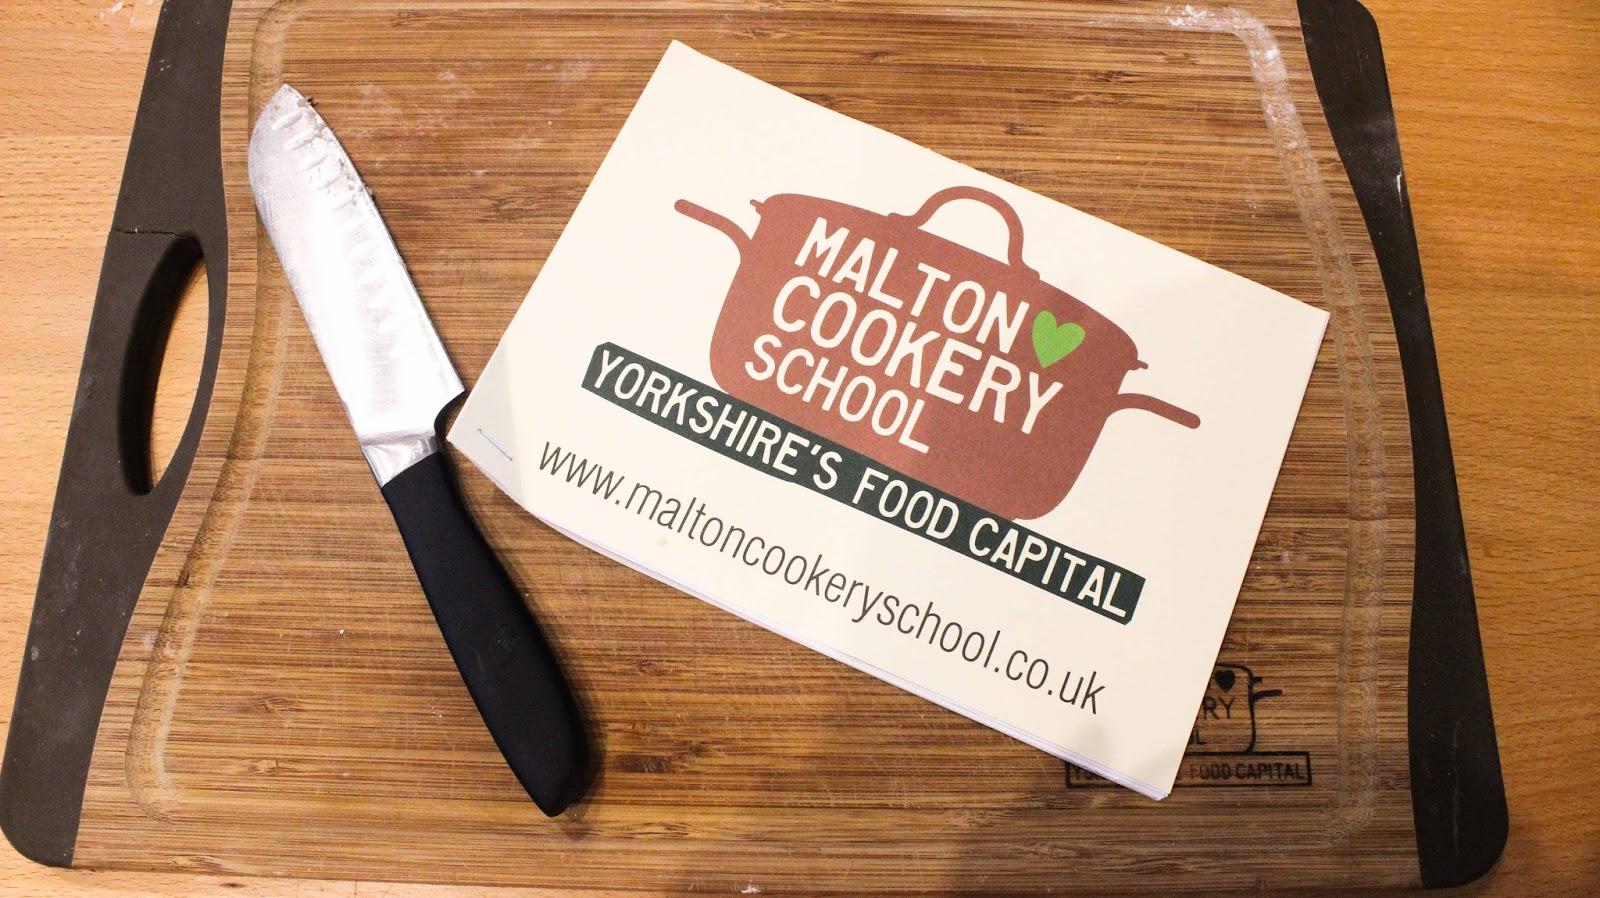 Molton Cookery School